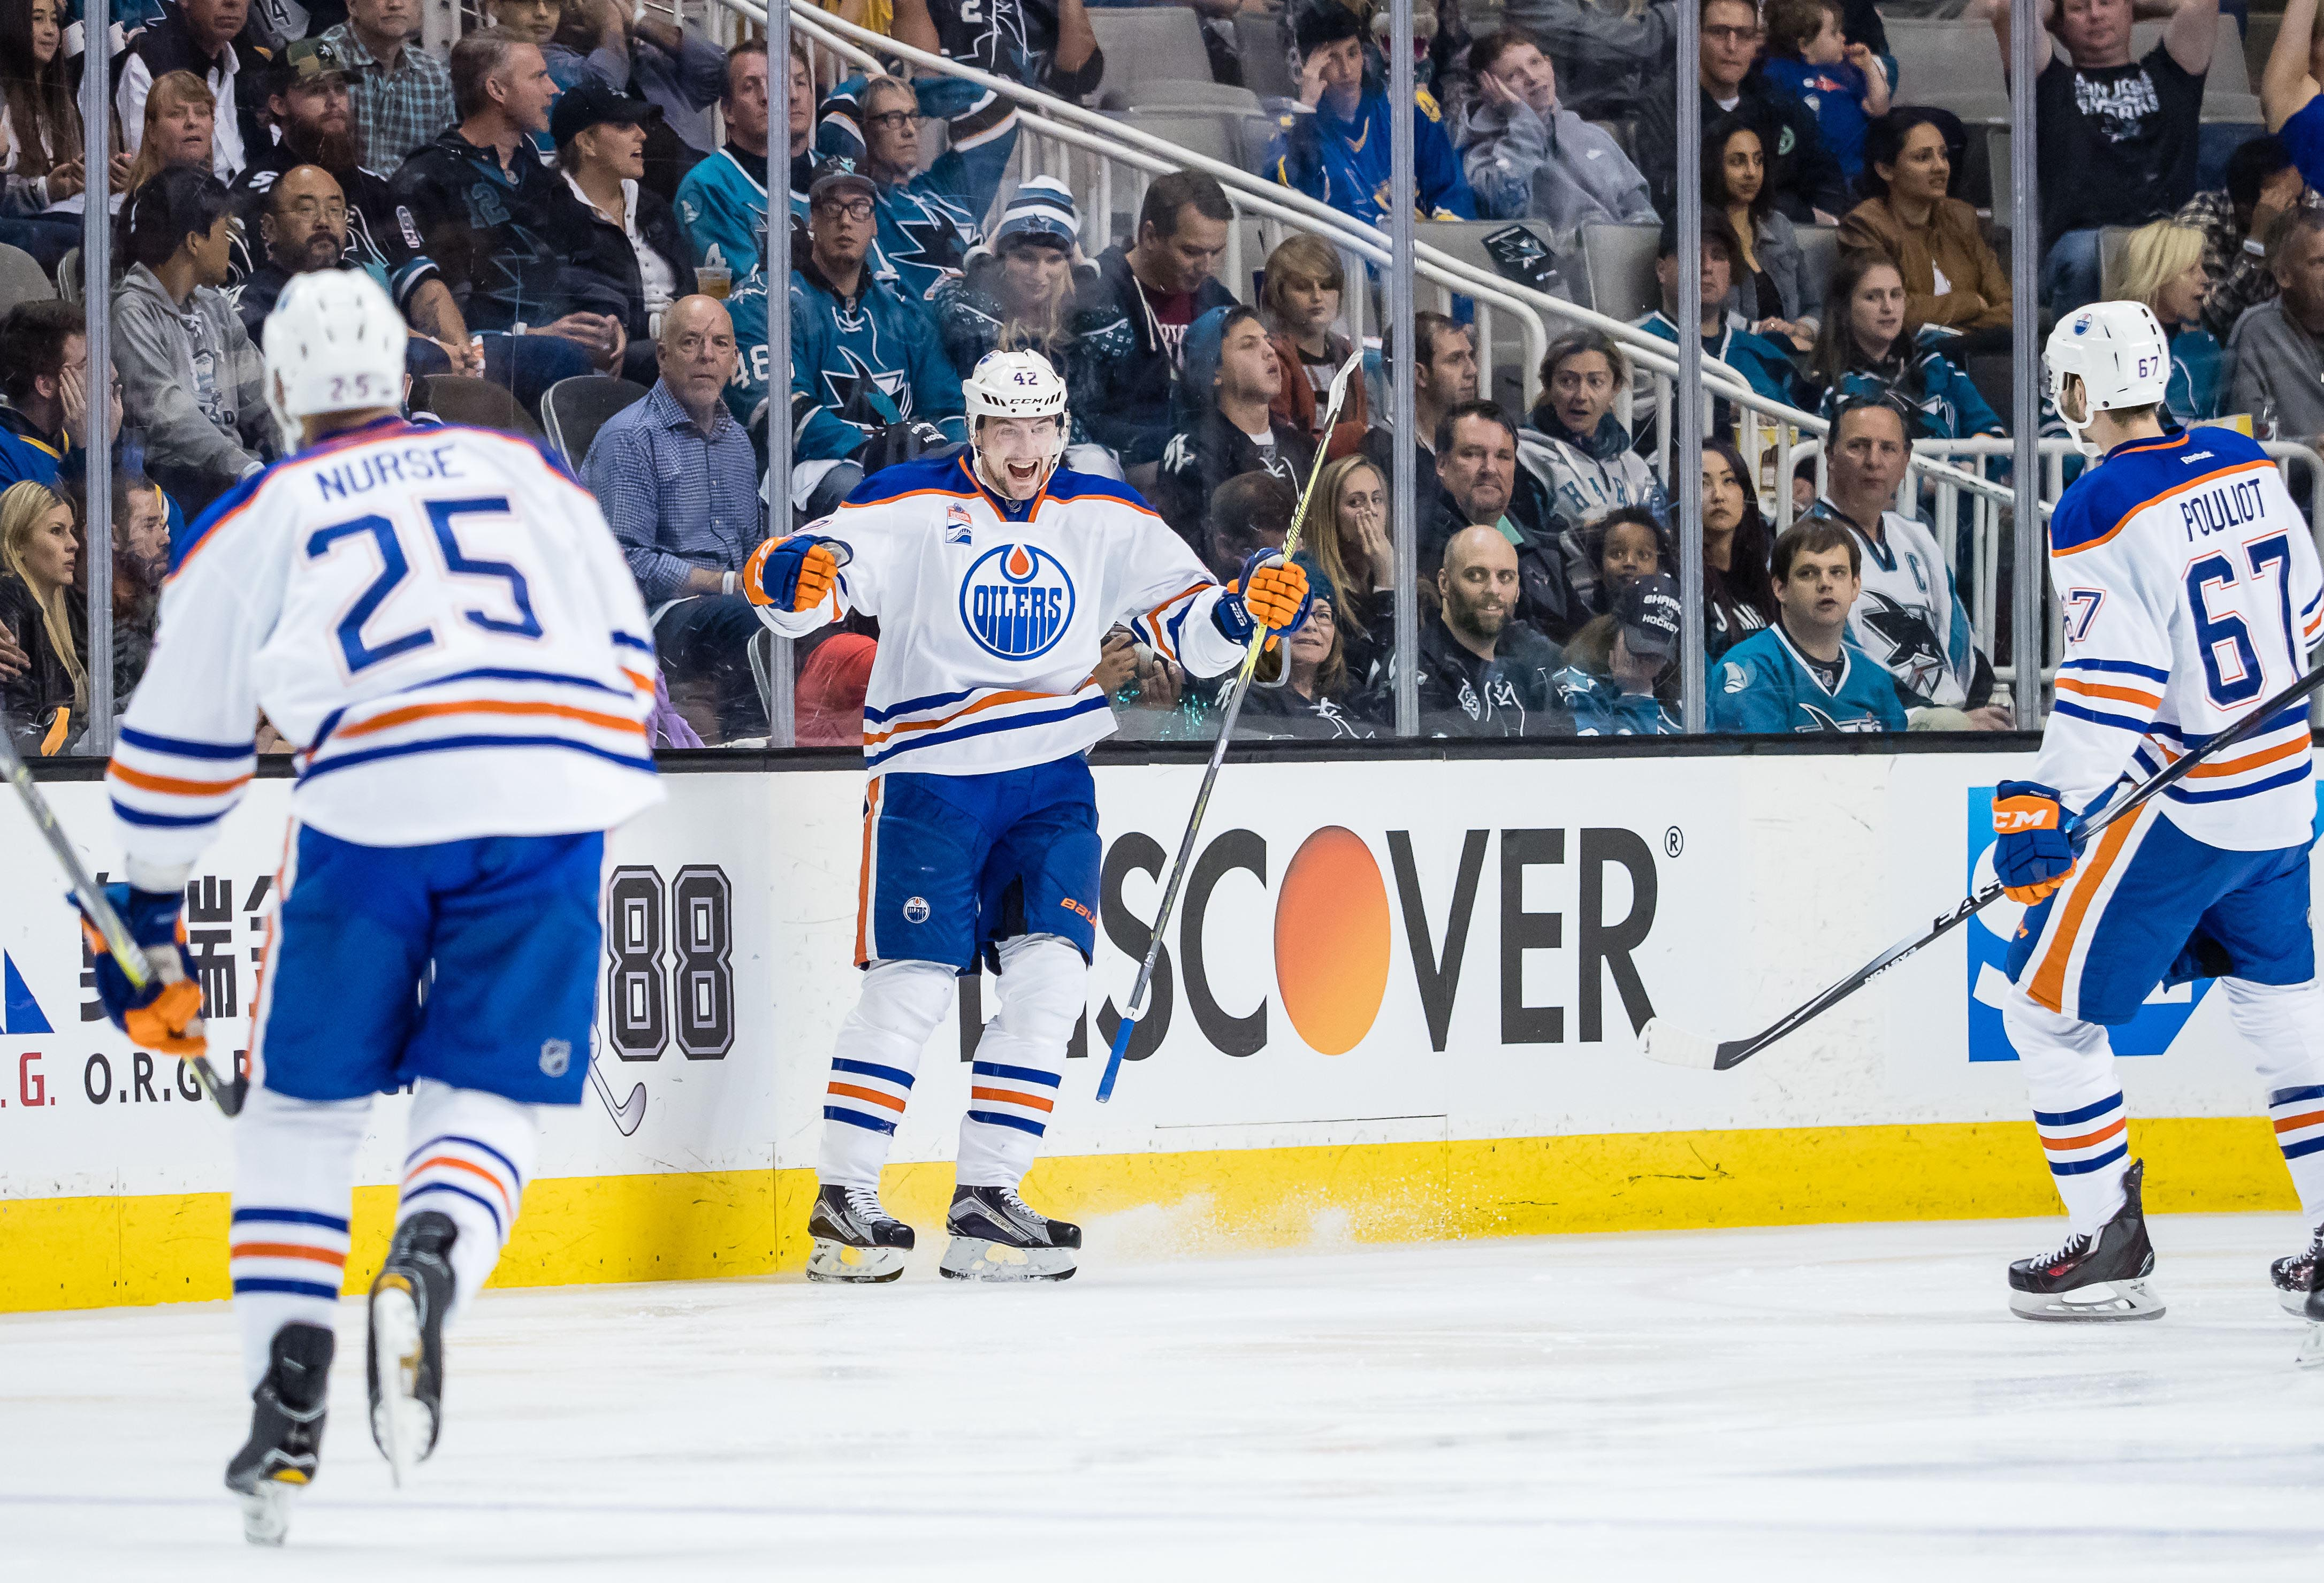 10026777-nhl-stanley-cup-playoffs-edmonton-oilers-at-san-jose-sharks